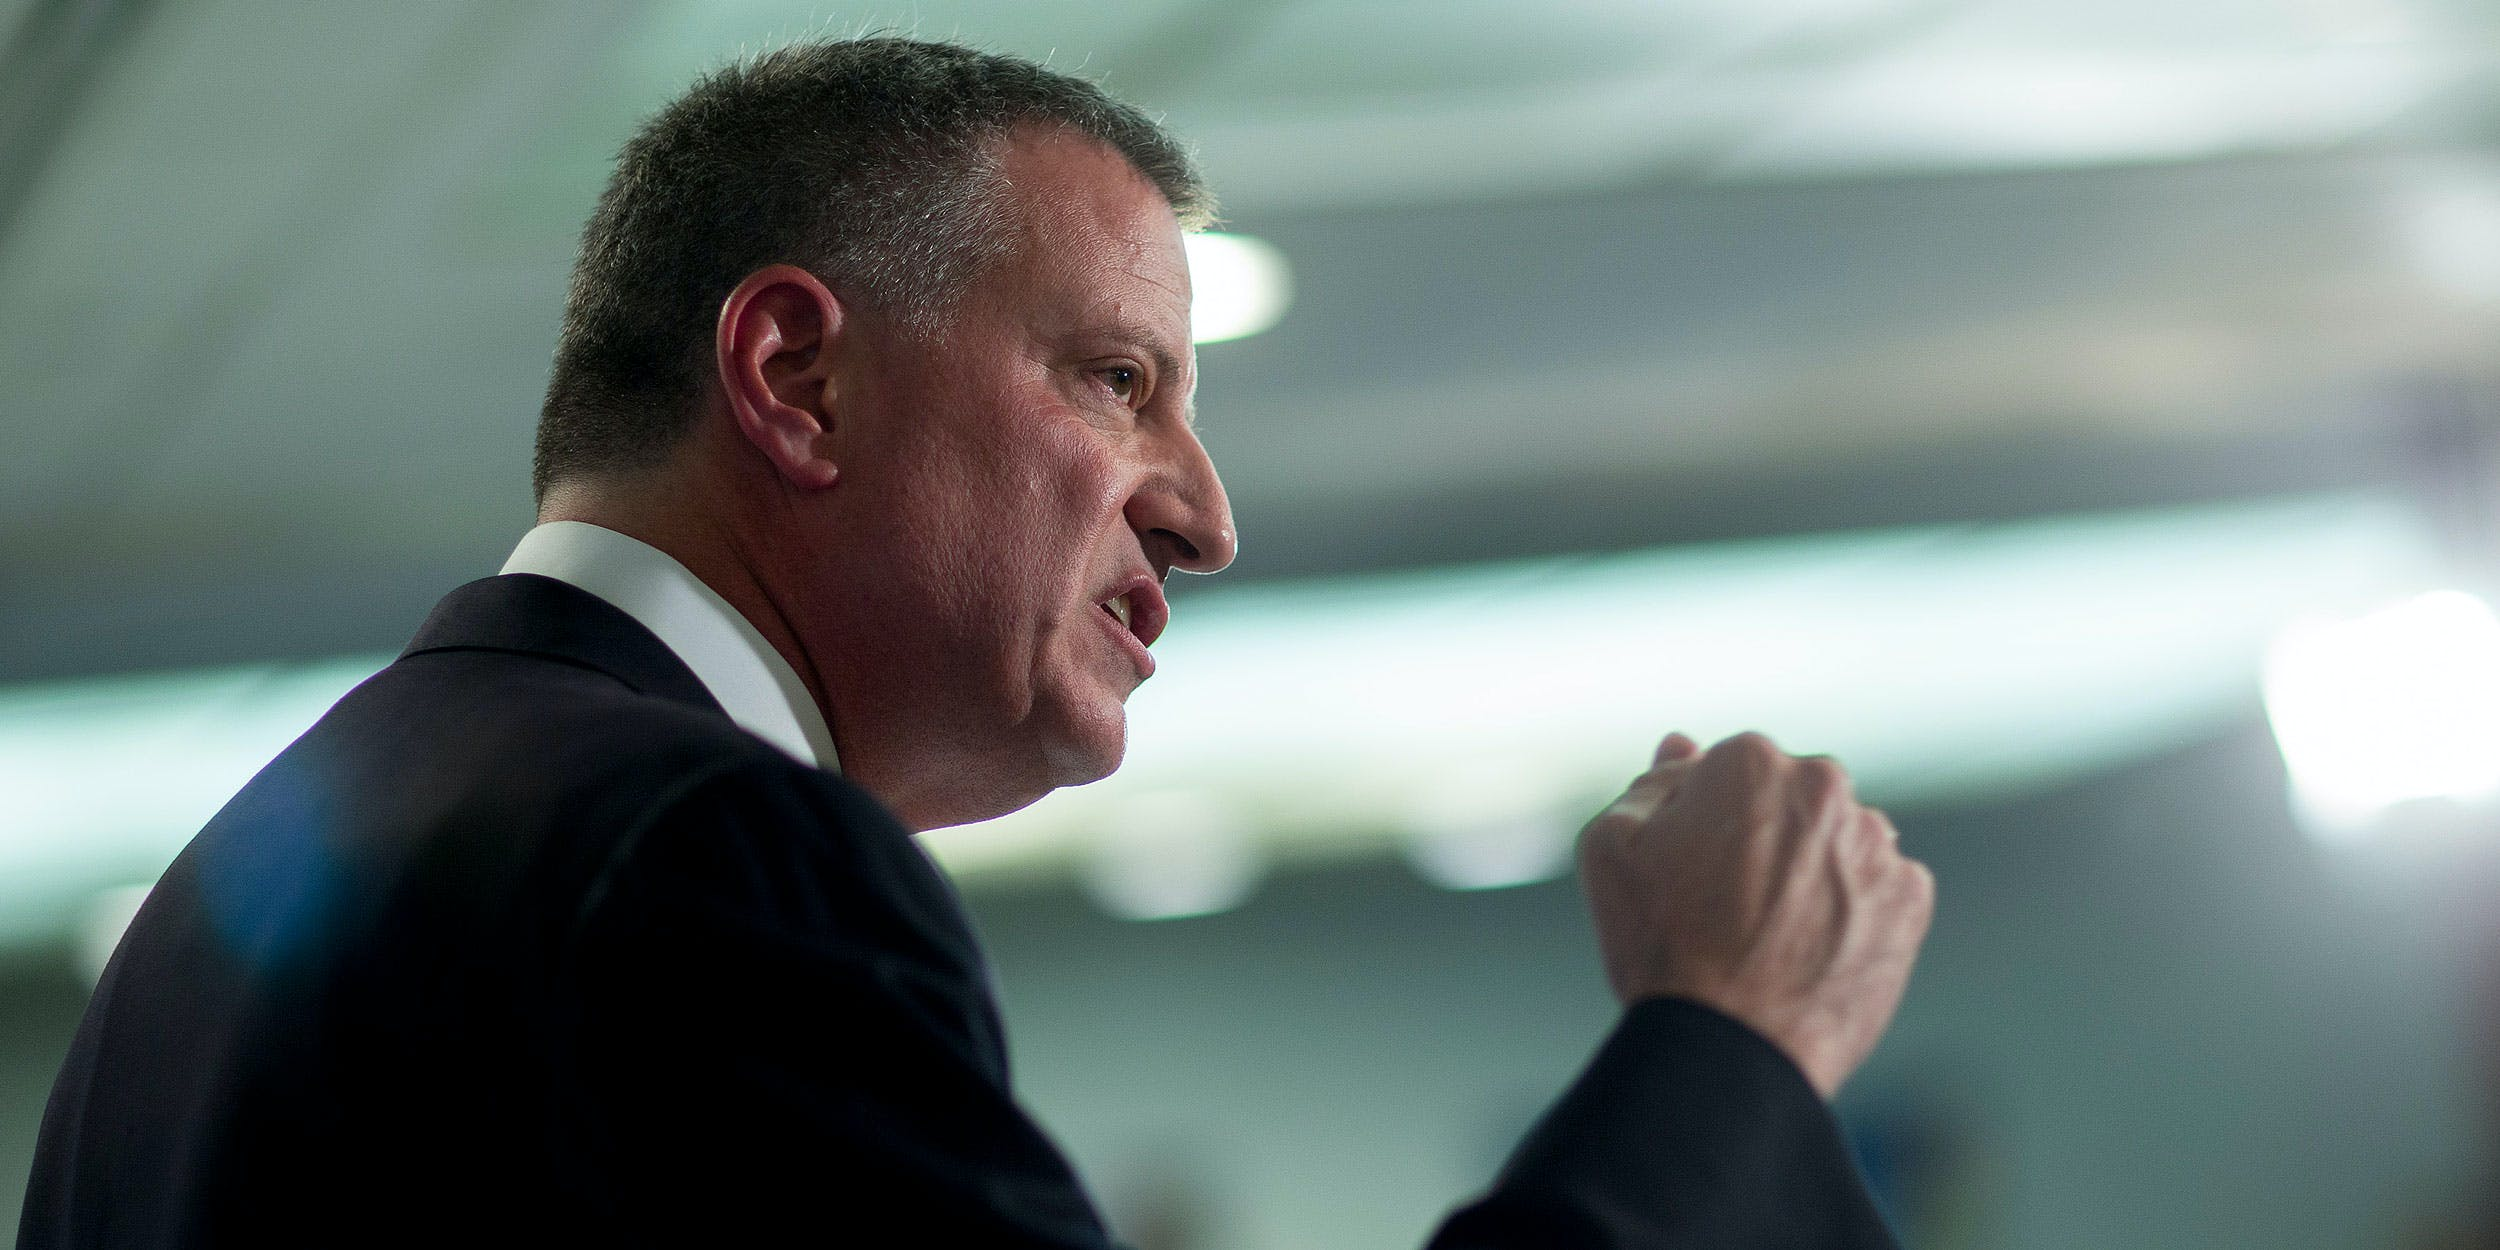 NYC Mayor de Blasio Tells The NYPD To Stop Arresting People For Smoking Weed